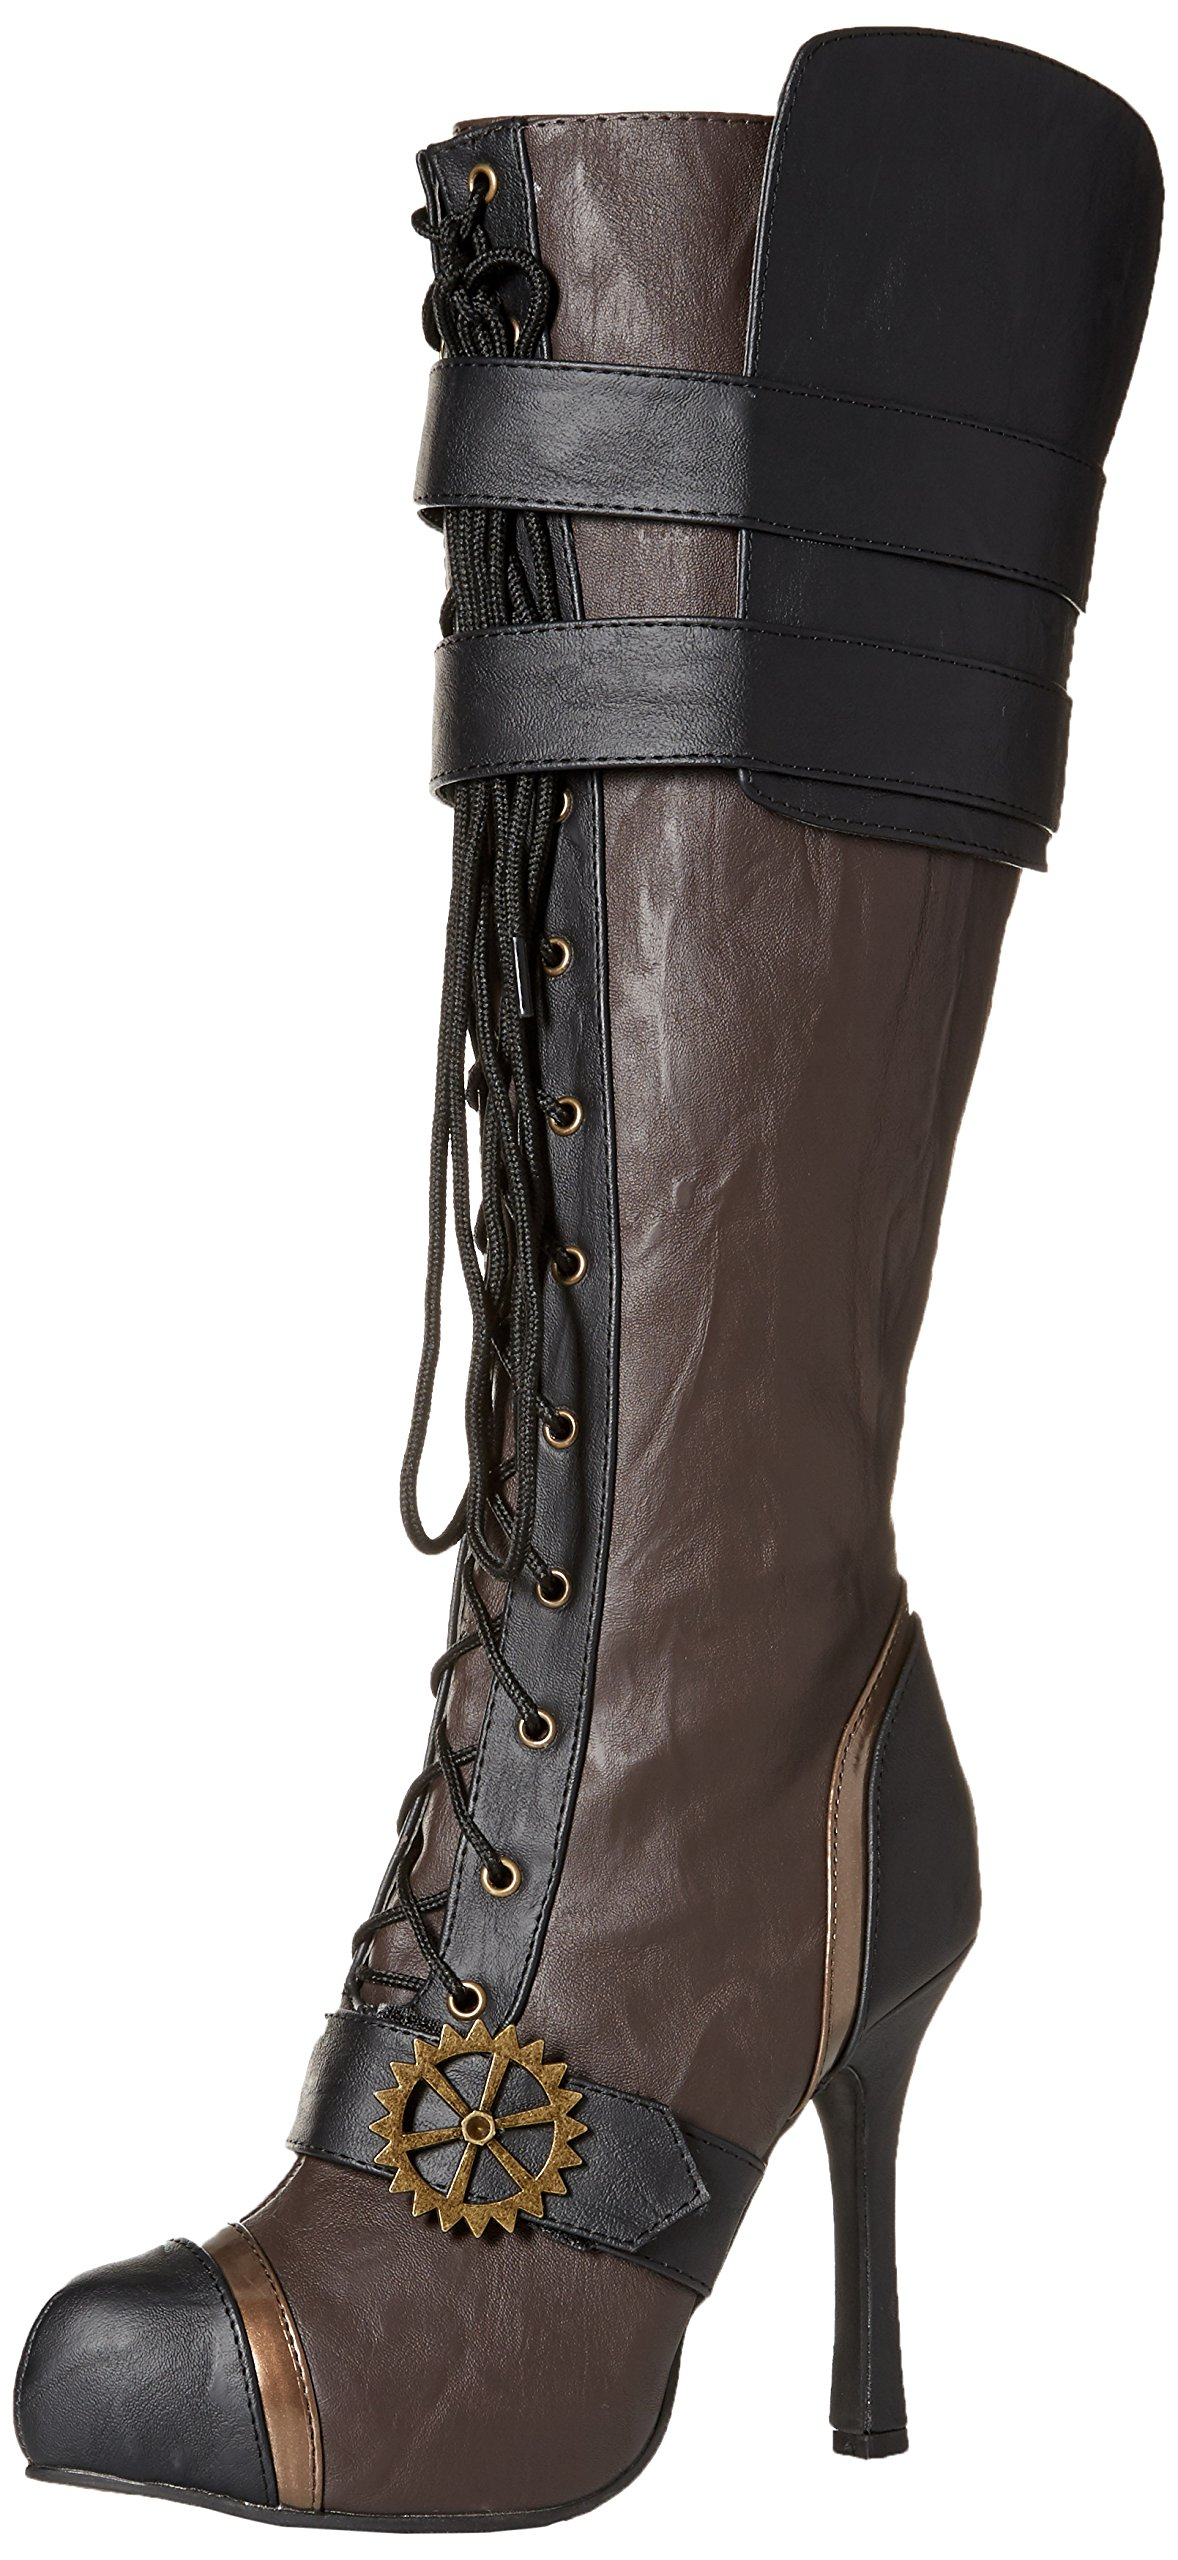 "Ellie Shoes Women's 420 Quinley 4"" Knee High Steampunk Boot with Laces 3"